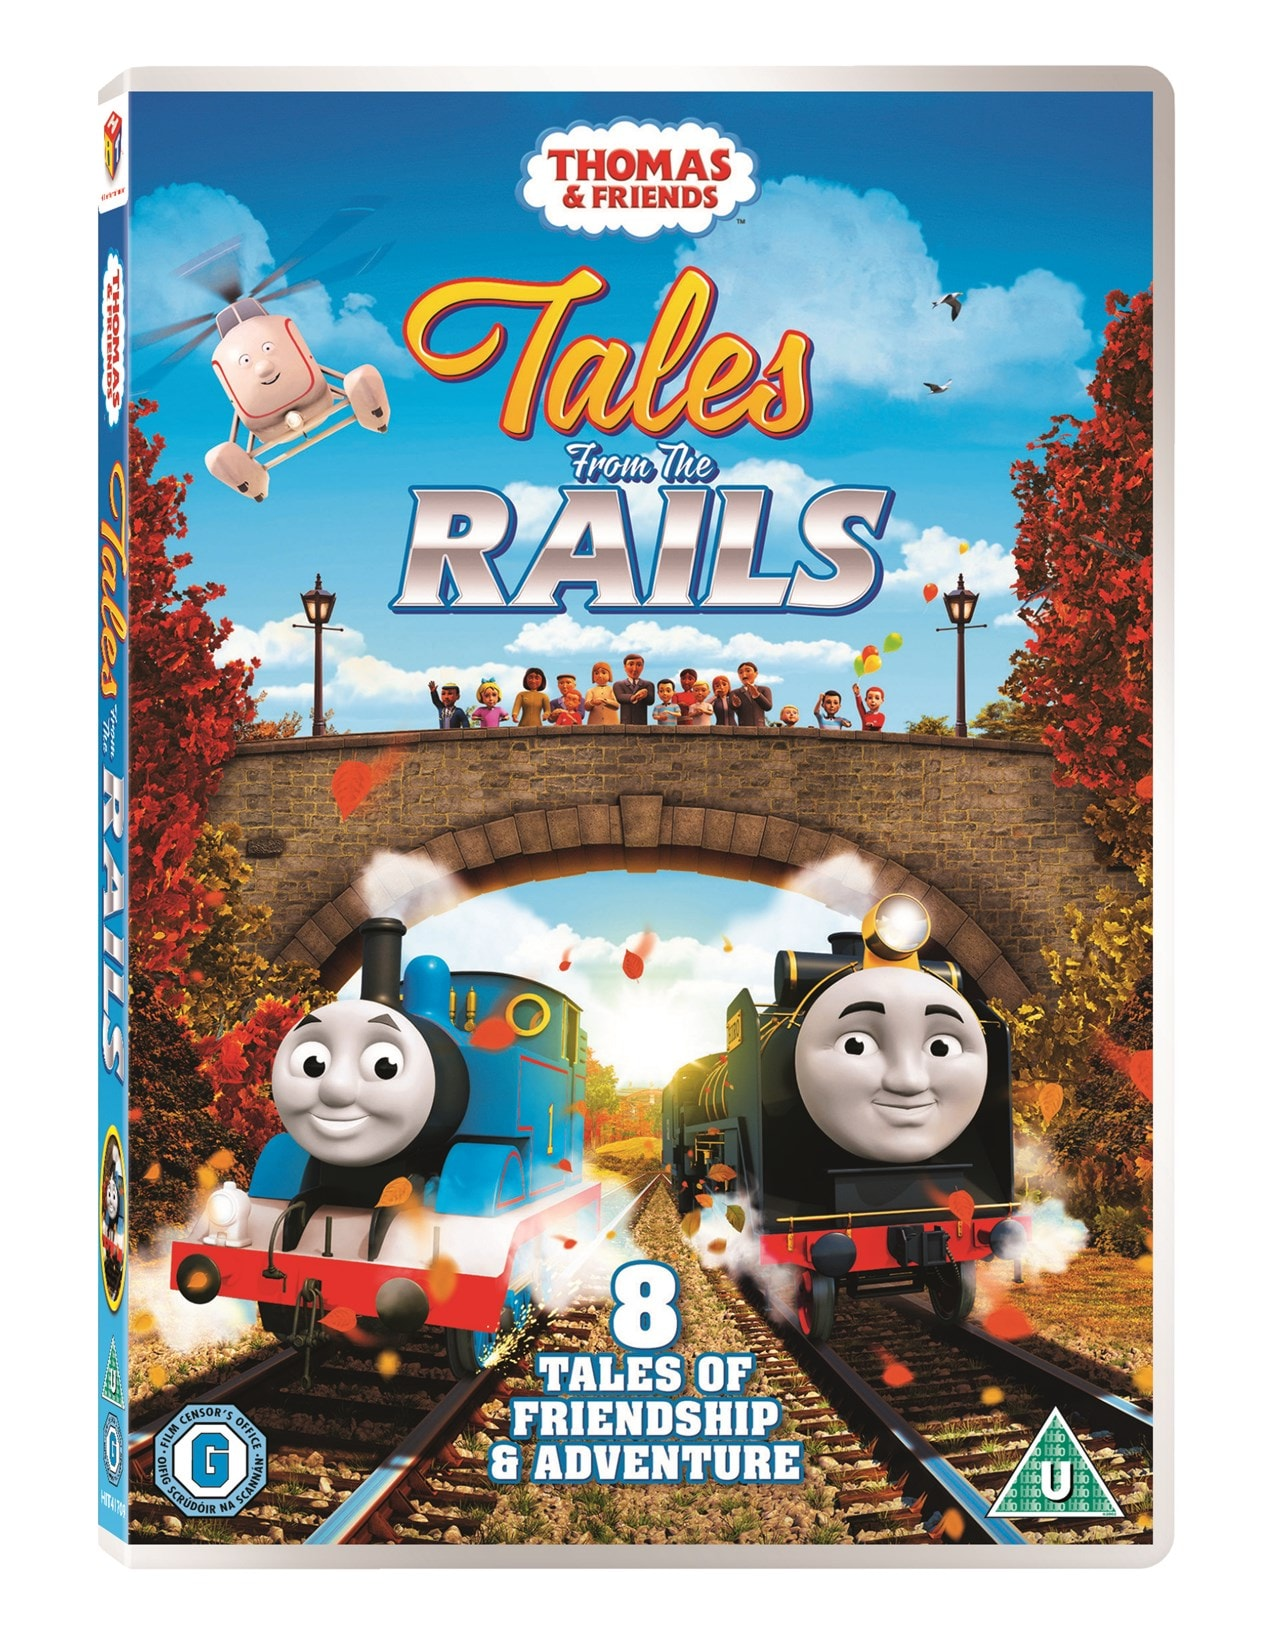 Thomas & Friends: Tales from the Rails - 2